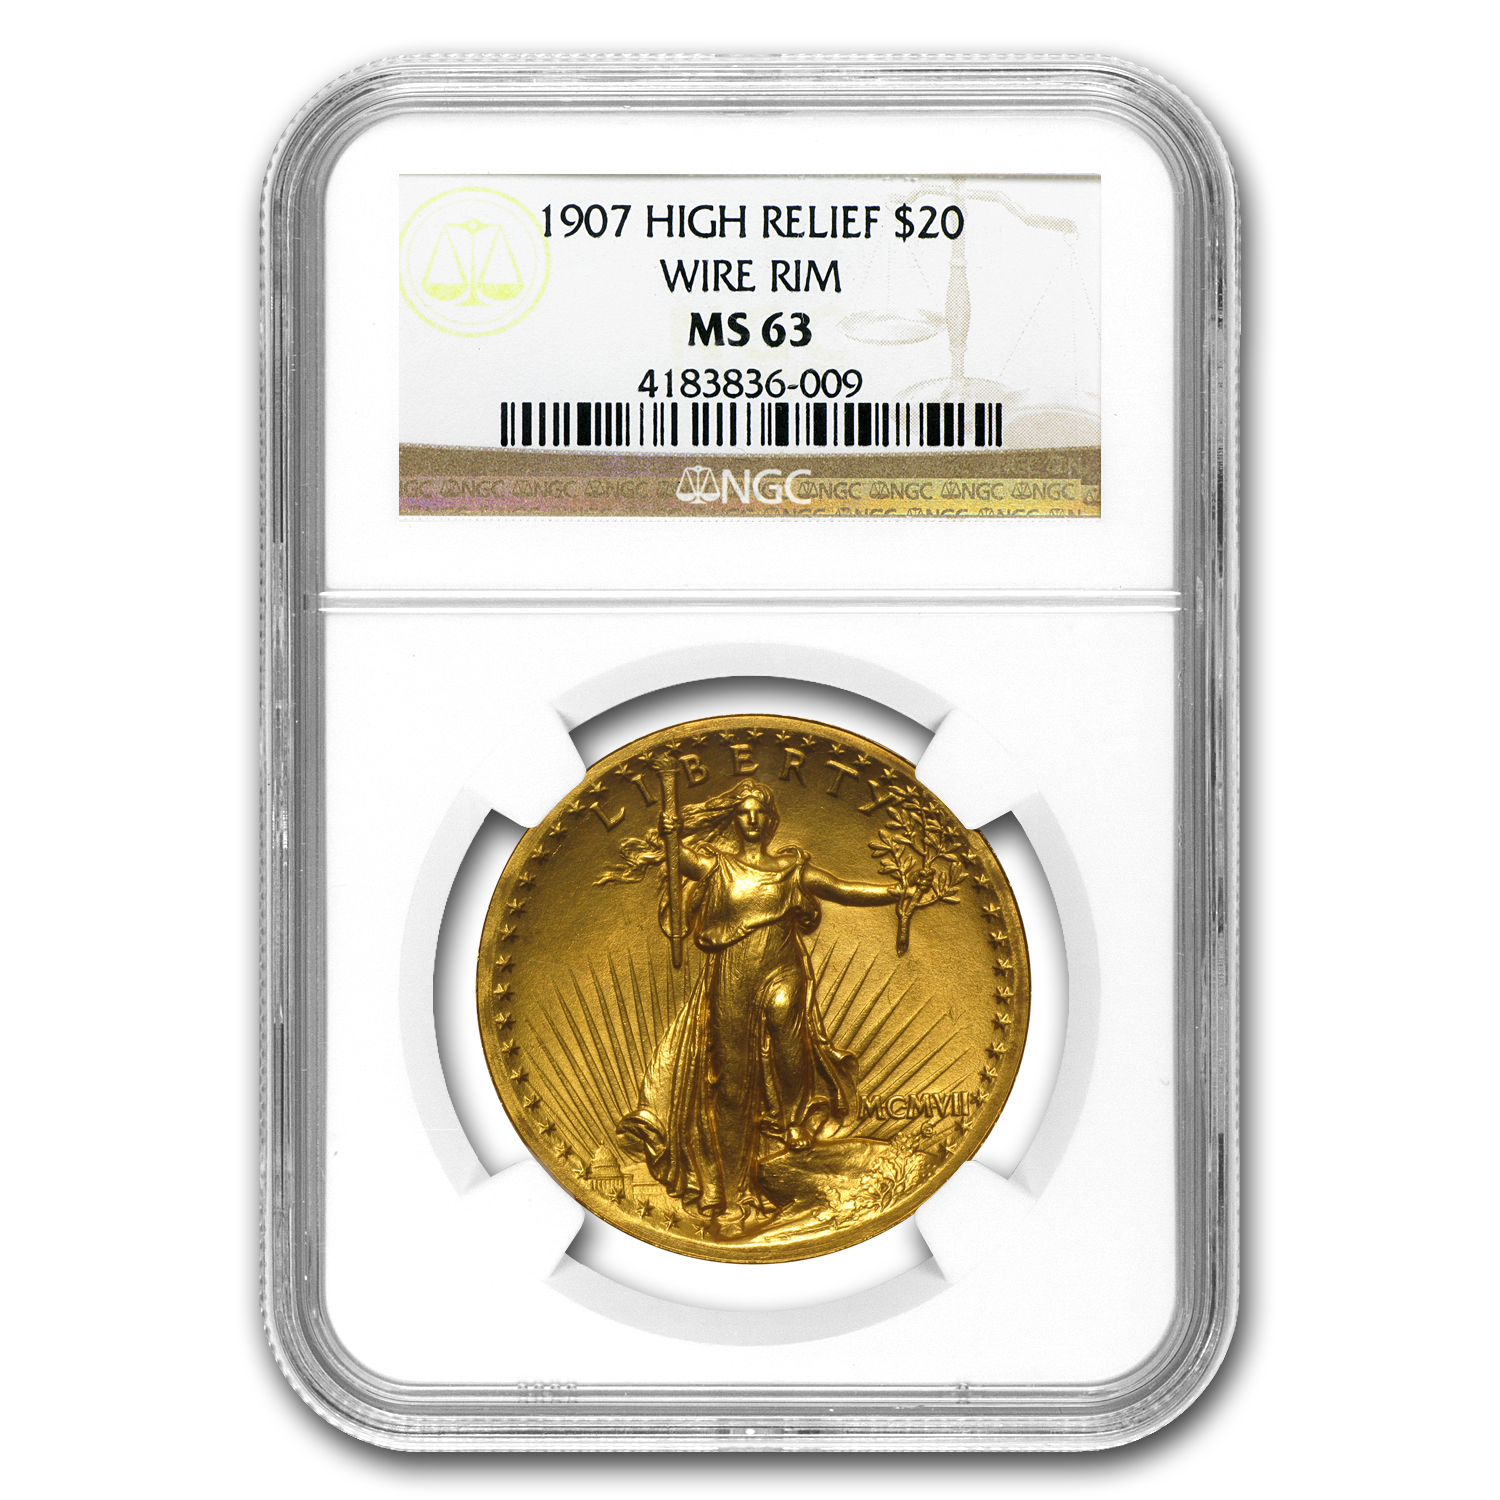 1907 $20 St. Gaudens Gold High Relief Wire Rim MS-63 NGC